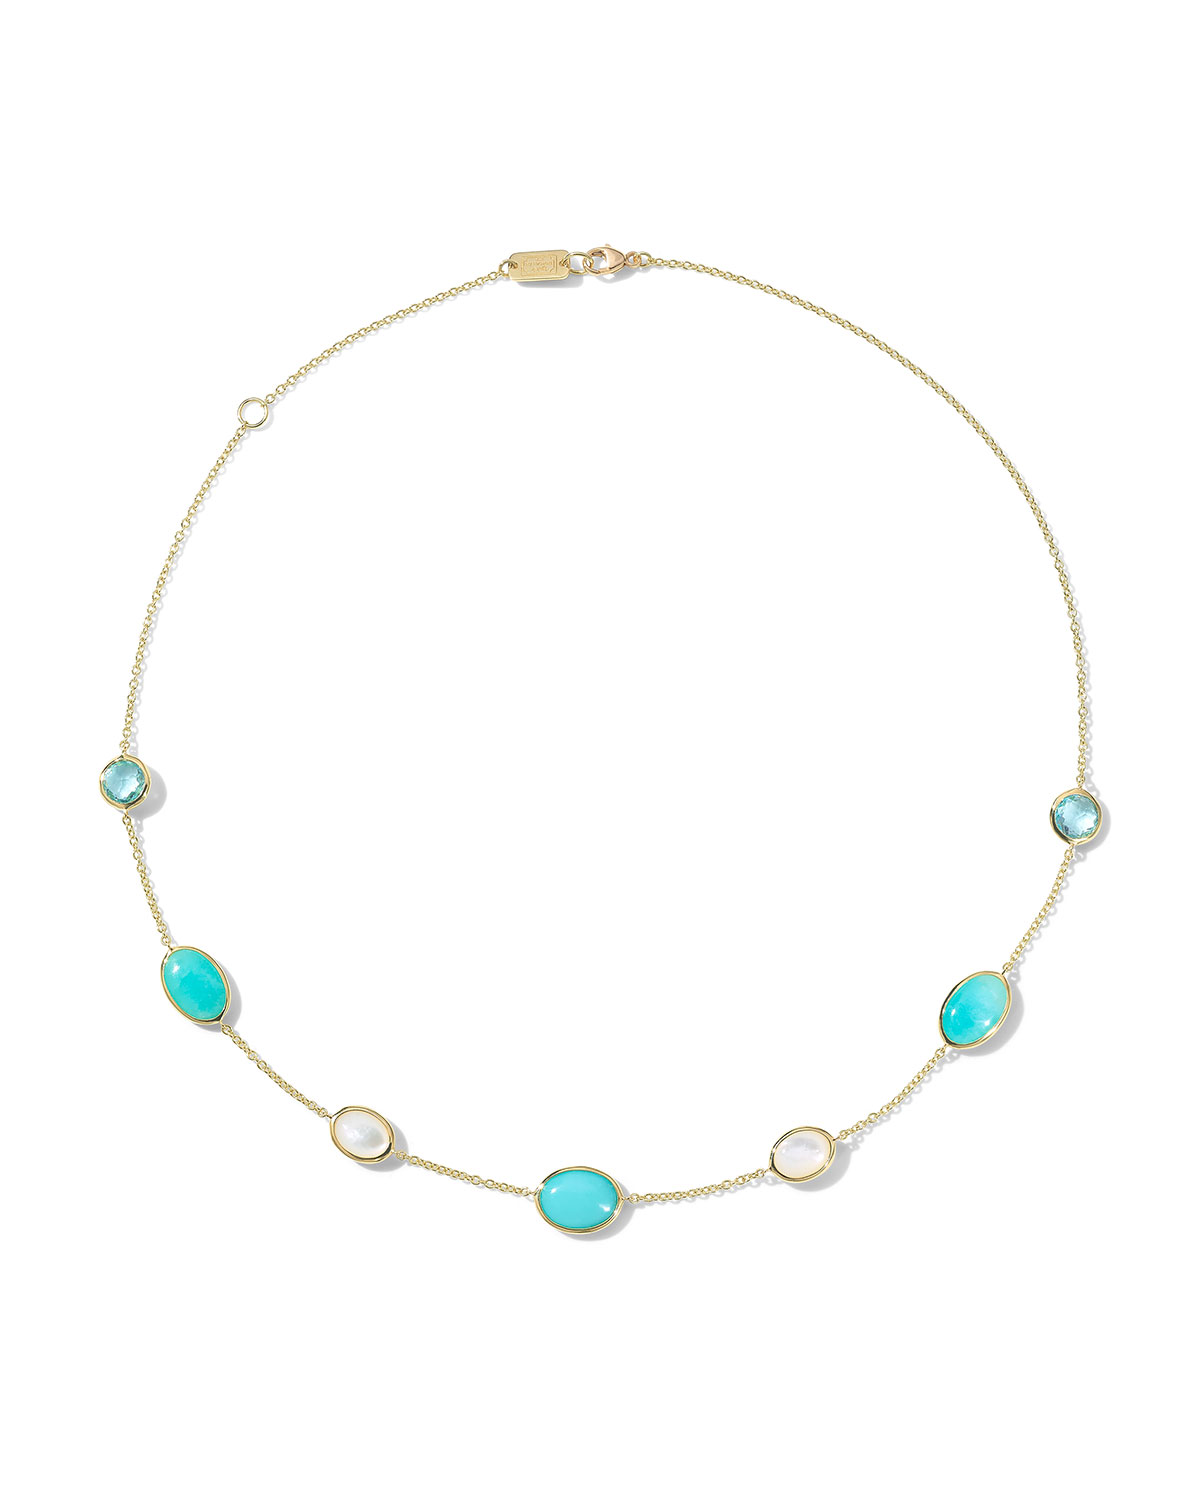 Ippolita 18K ROCK CANDY LUCE SMALLER ALL-STONE LONG NECKLACE IN CASCATA